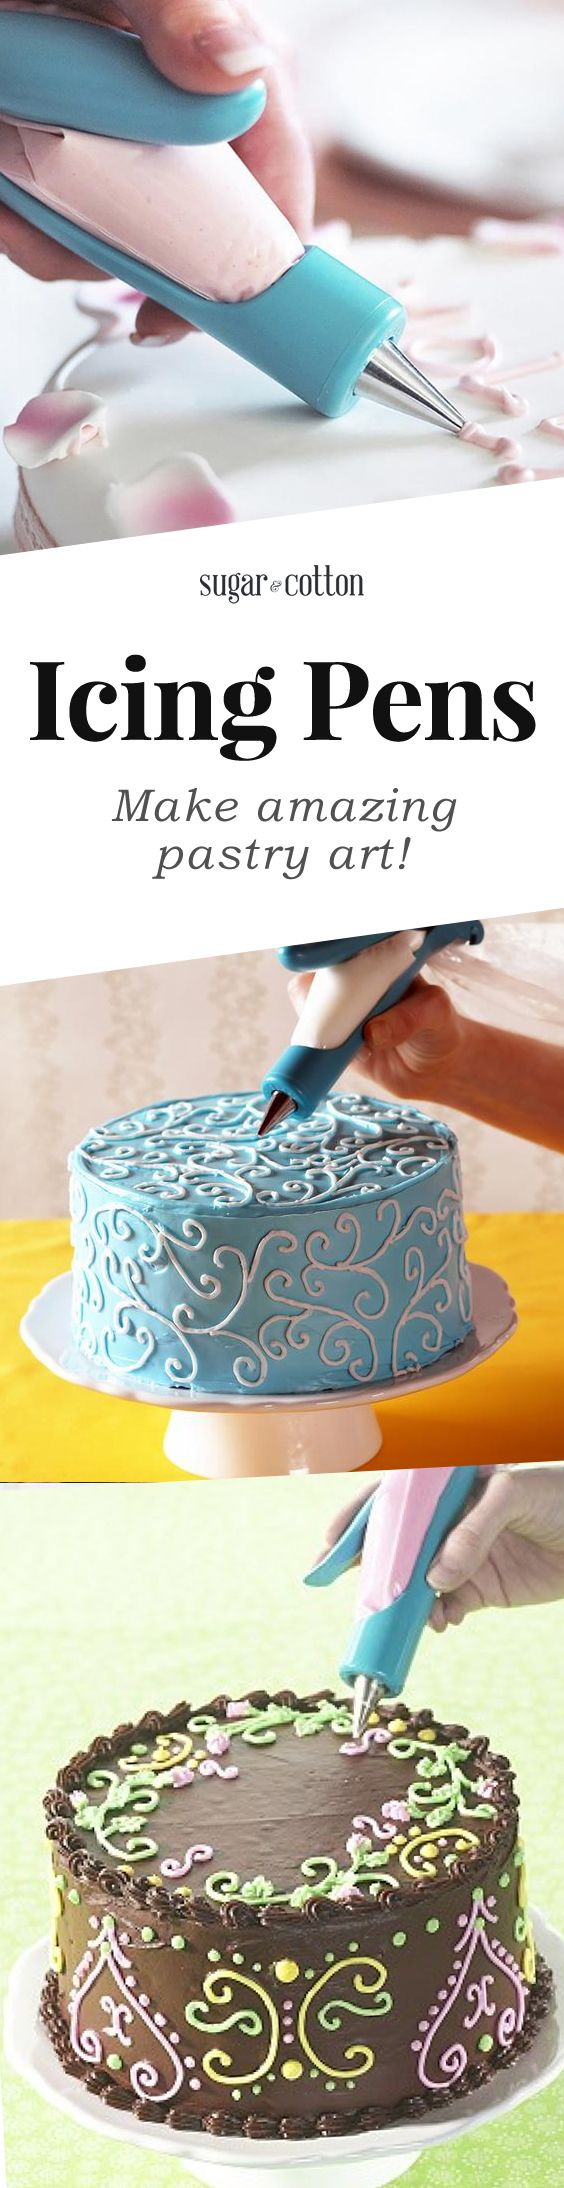 Pin By Michi Hidalgo On Holibakey In 2021 Cookie Decorating Cupcake Cakes Cake Decorating